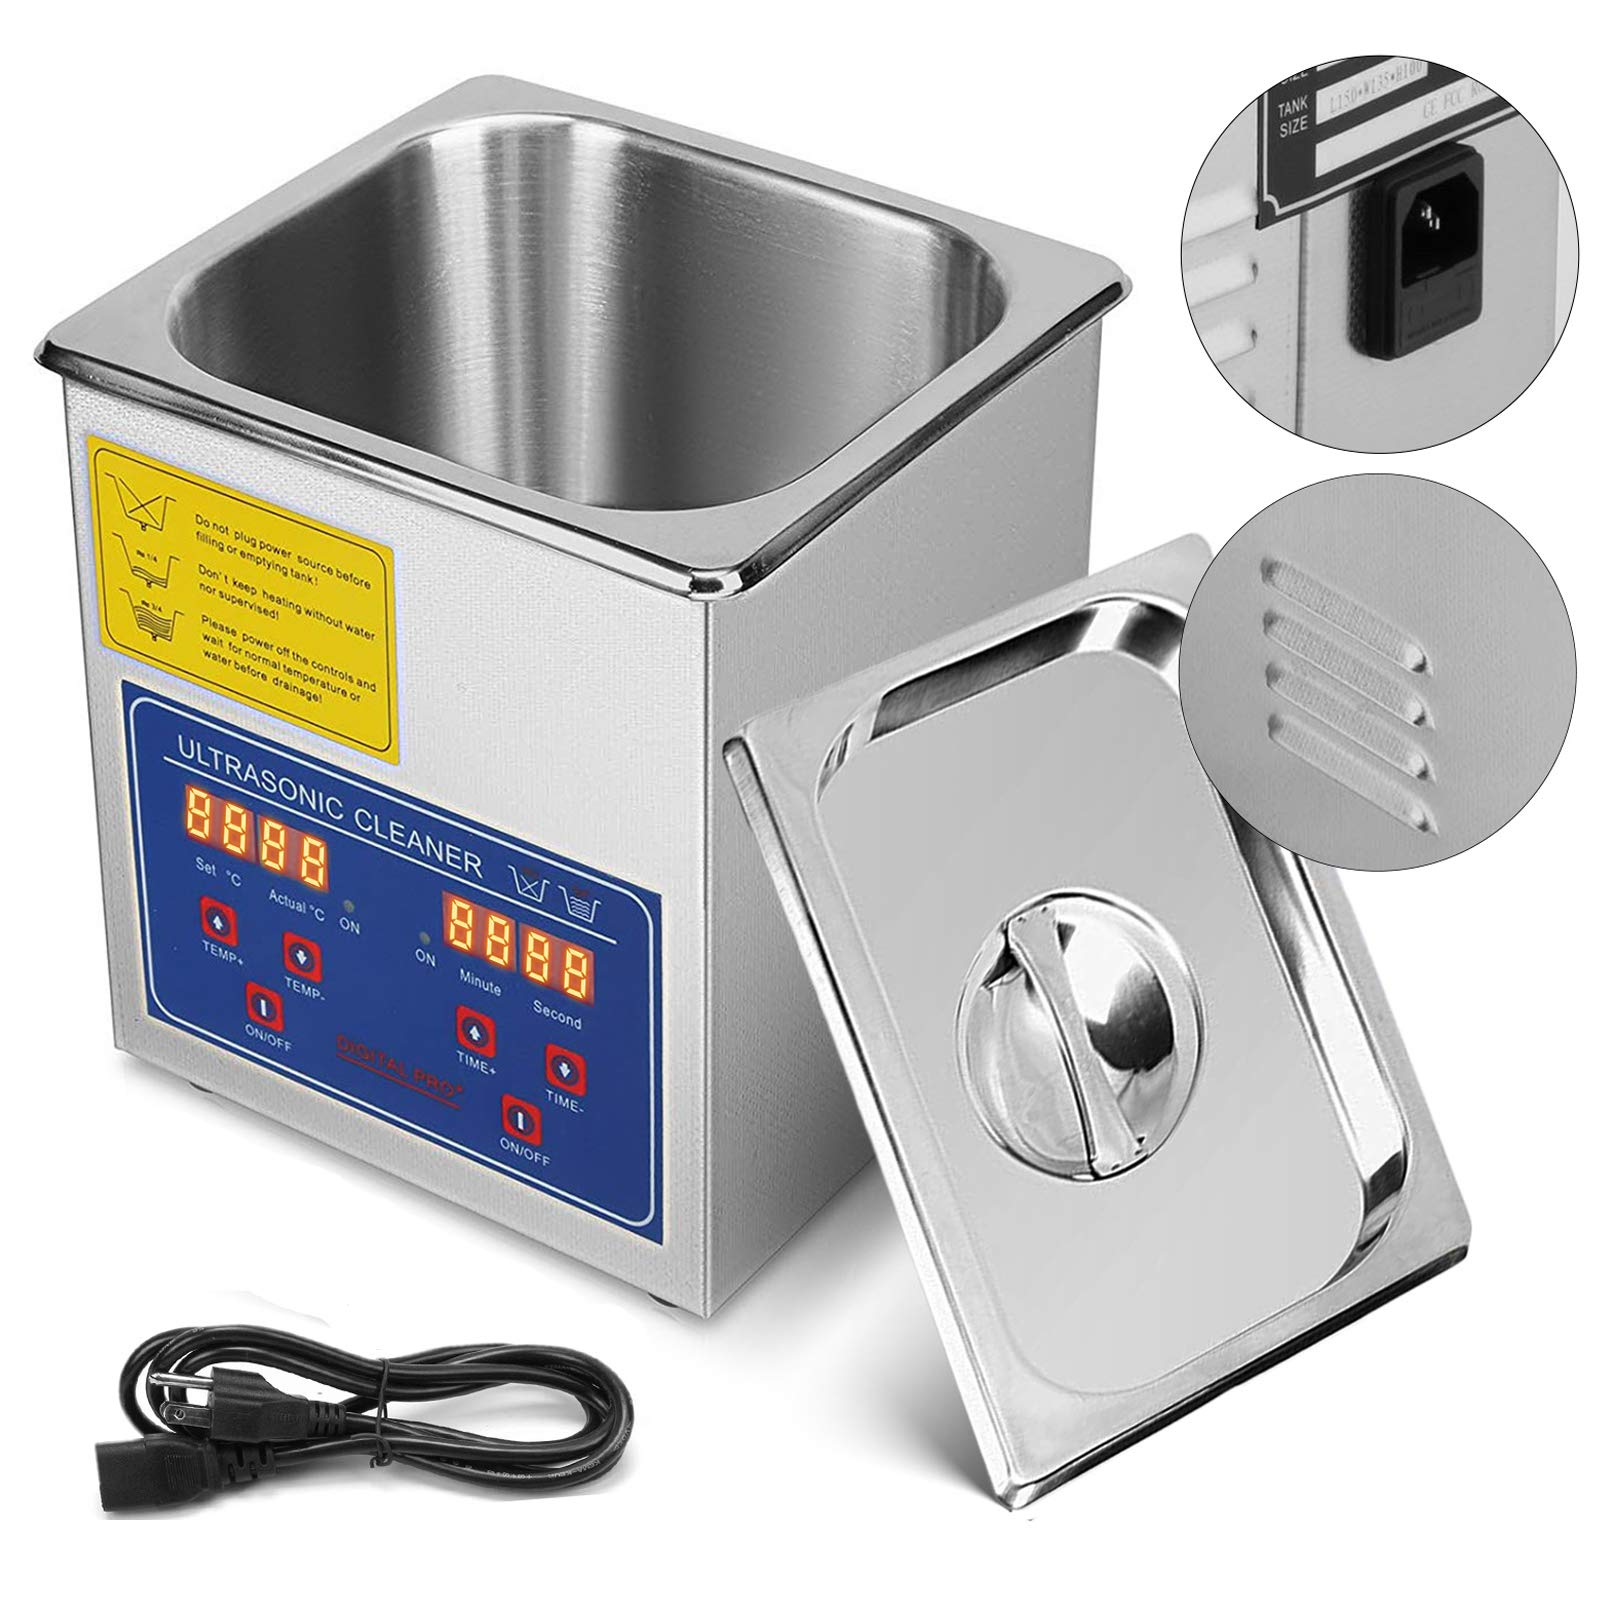 Mophorn Ultrasonic Cleaner 1.3L Total 110W Ultrasonic Parts Cleaner Professional Stainless Steel Industrial Ultrasonic Cleaner Jewelry Cleaner with Heater Timer(1.3L)